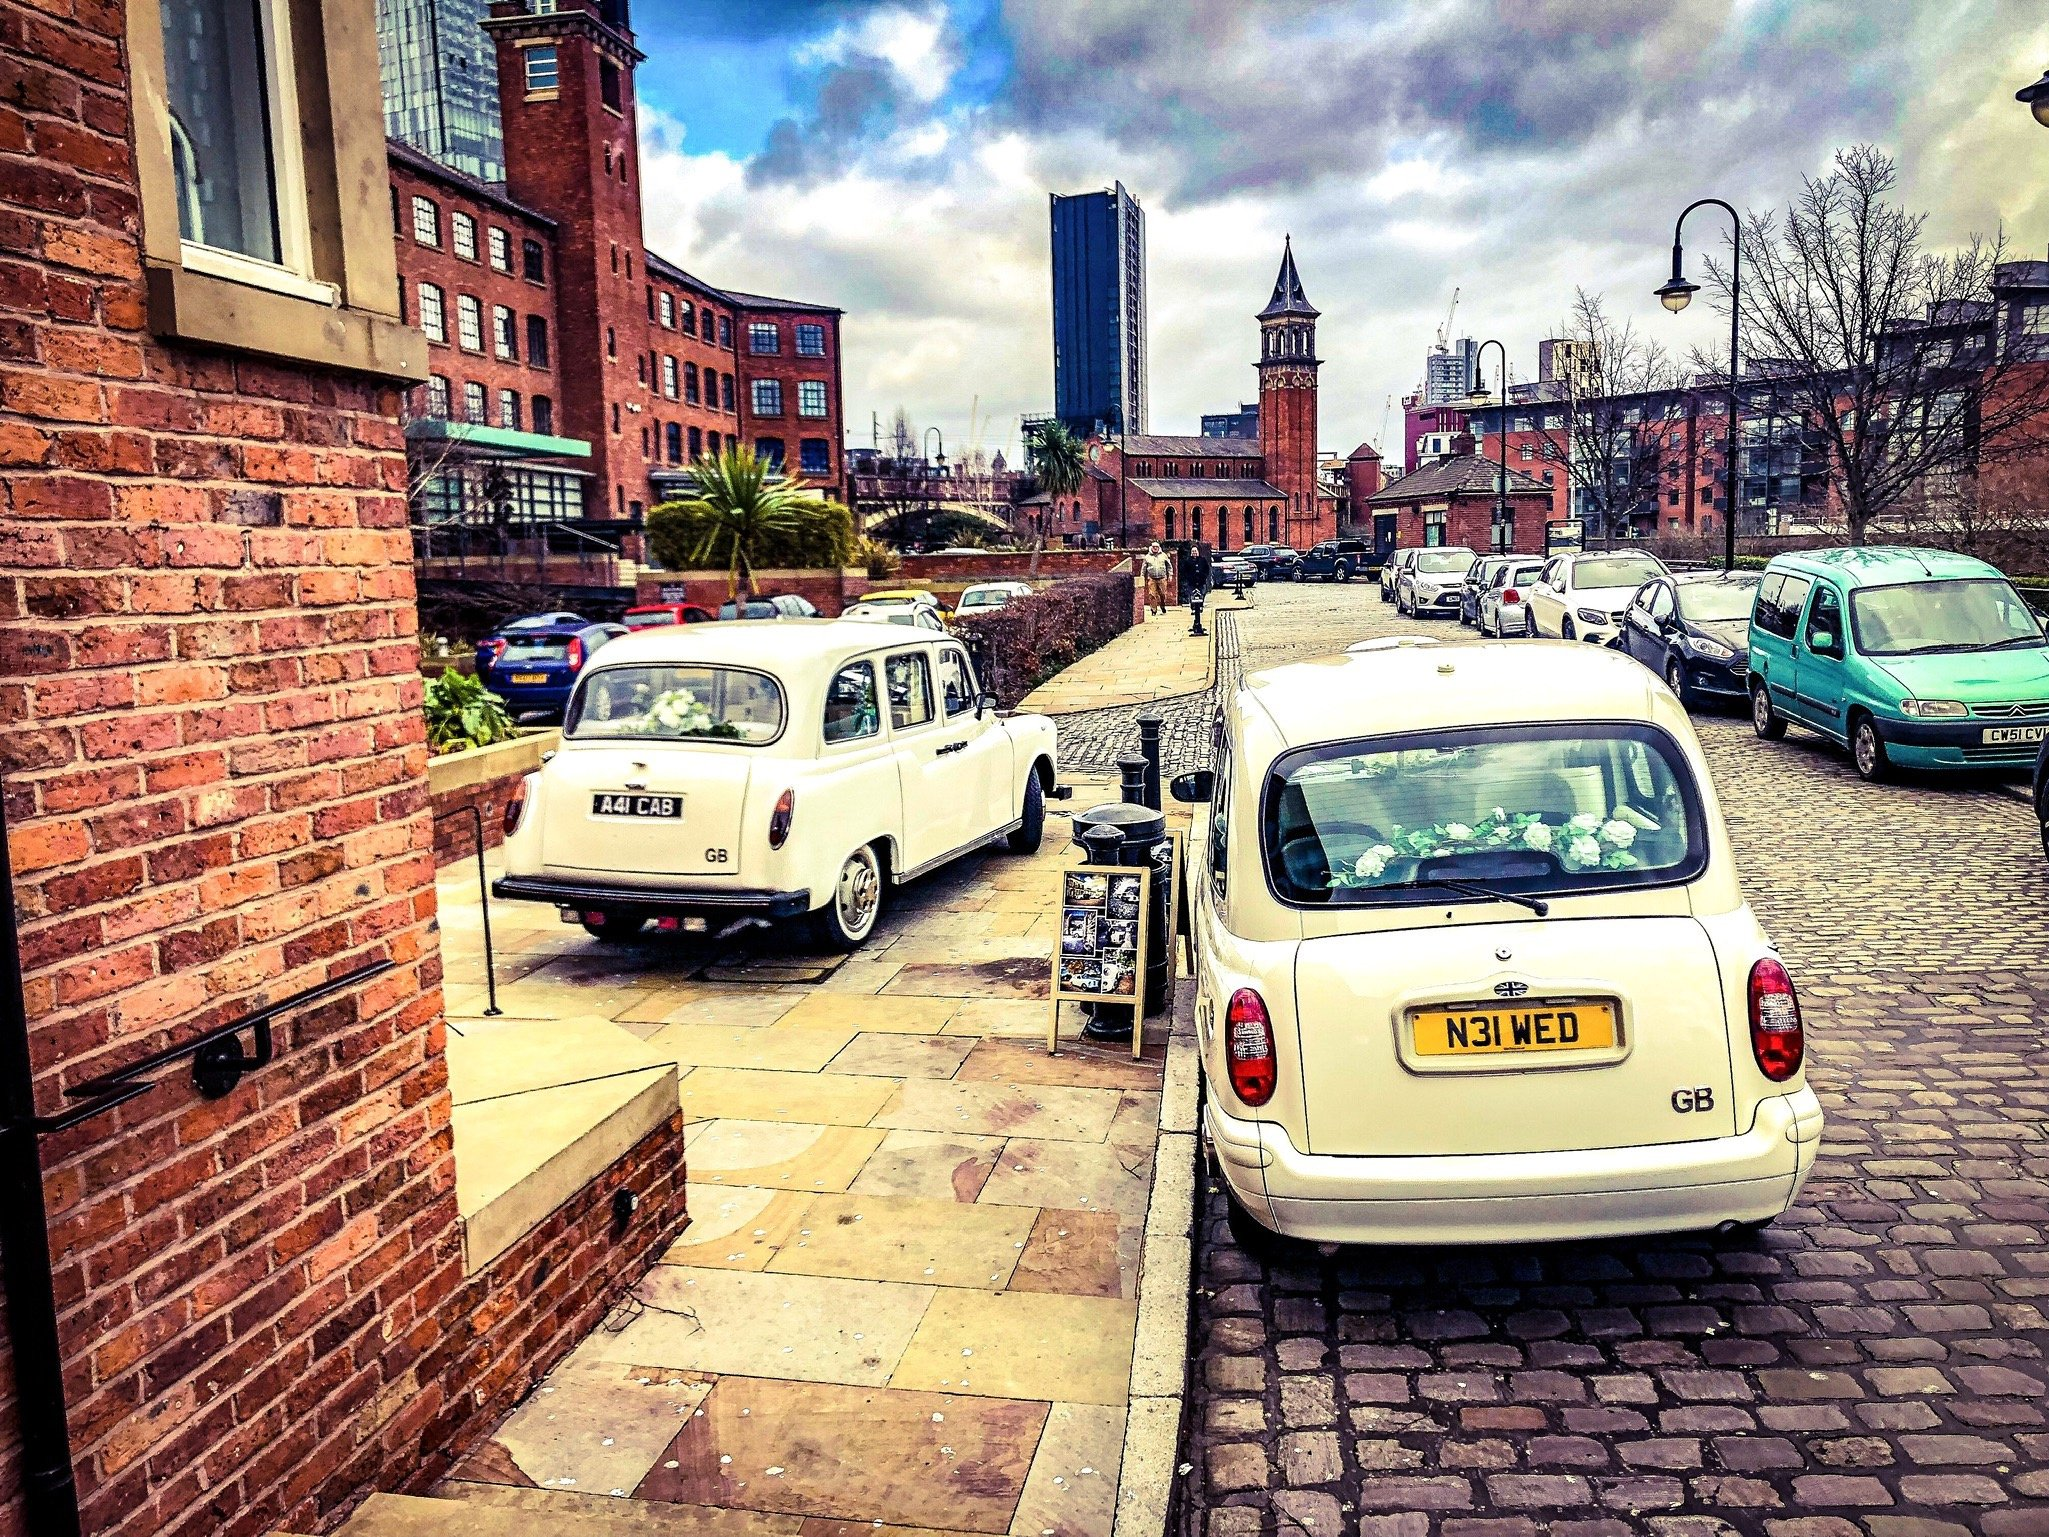 https://0501.nccdn.net/4_2/000/000/017/e75/castlefield-wedding-taxis-cars-manchester-2049x1537.jpg